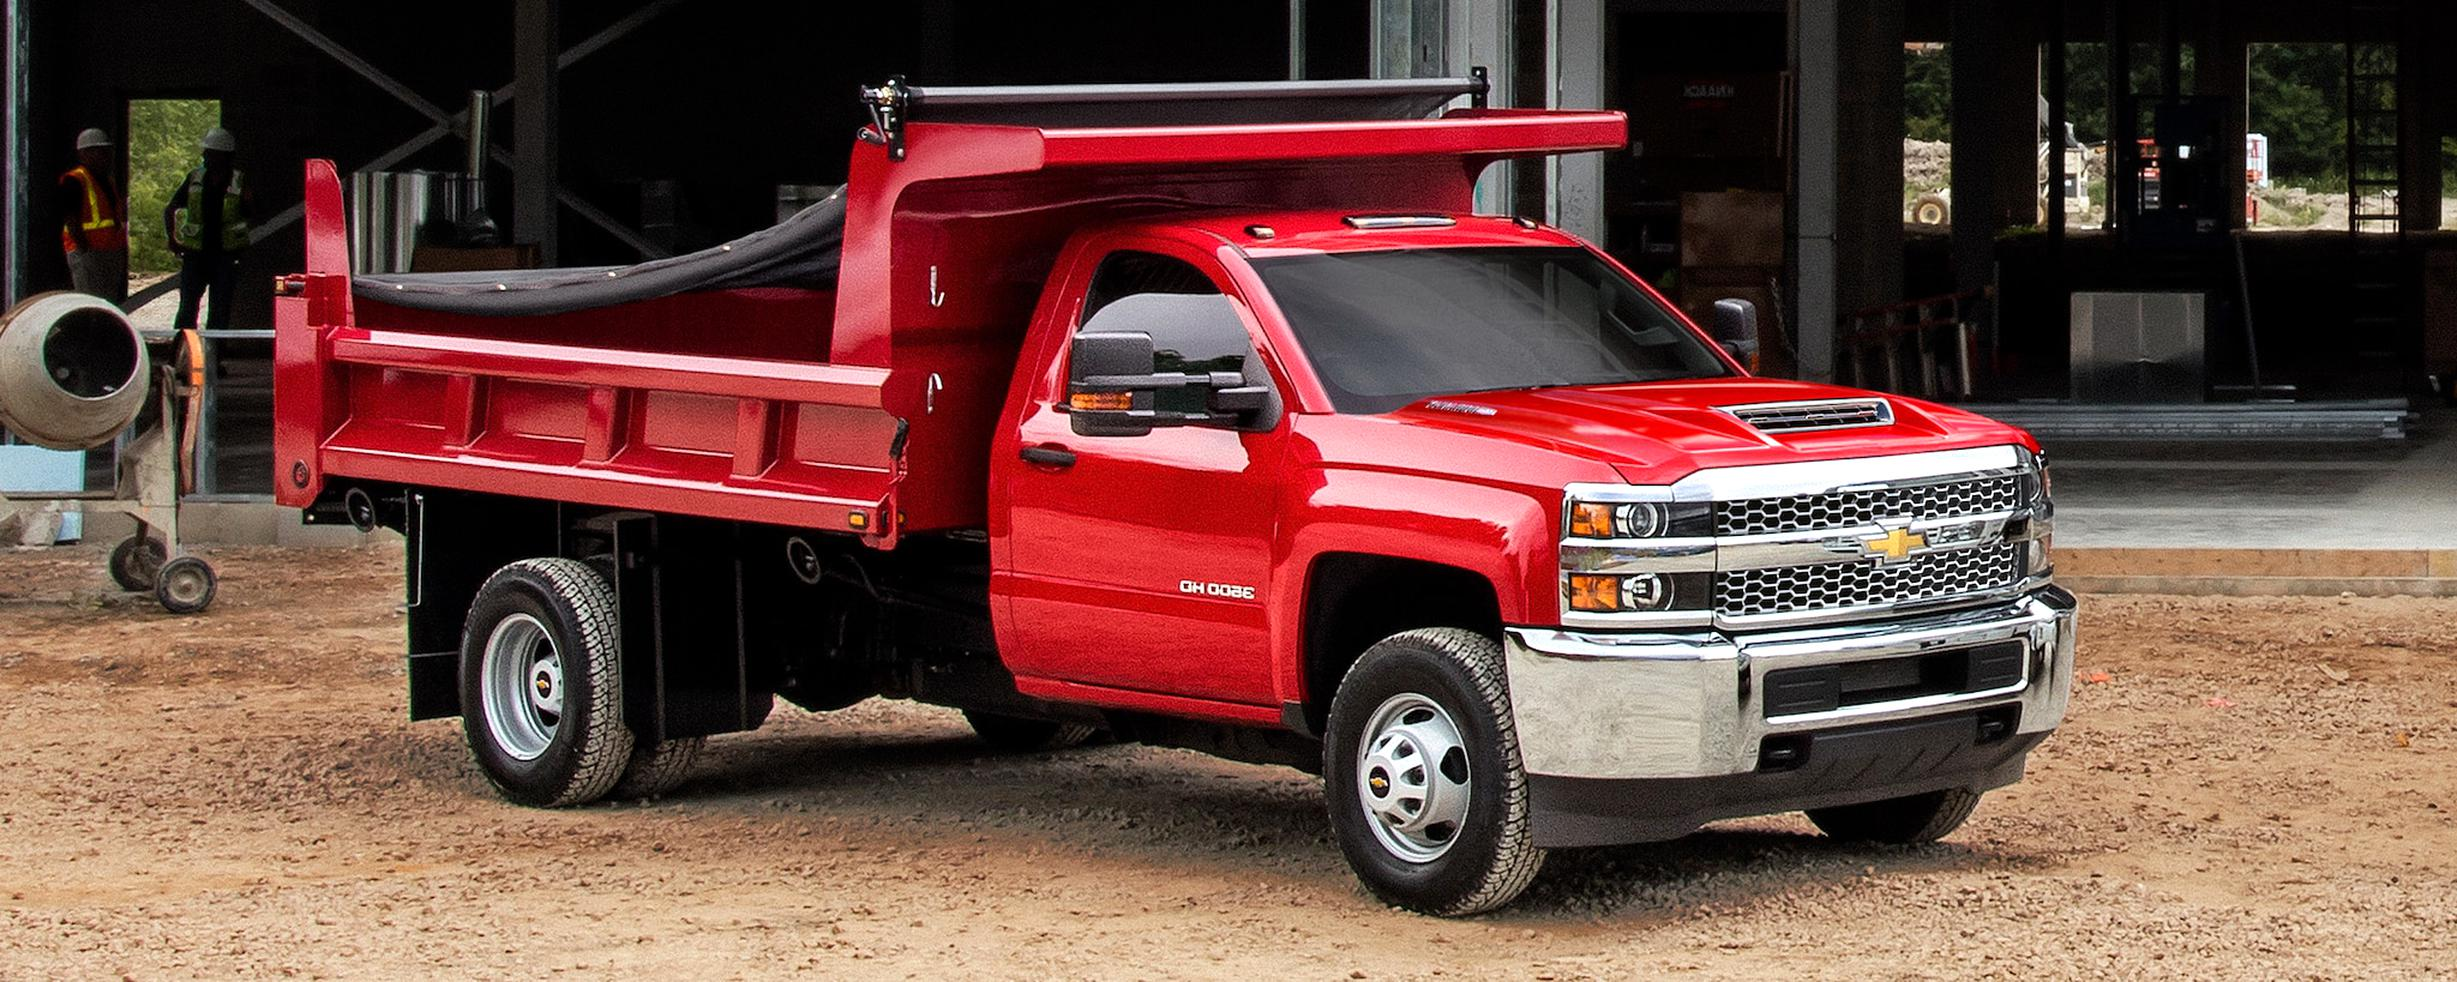 Chevy Dump Truck for sale | Only 2 left at -75%